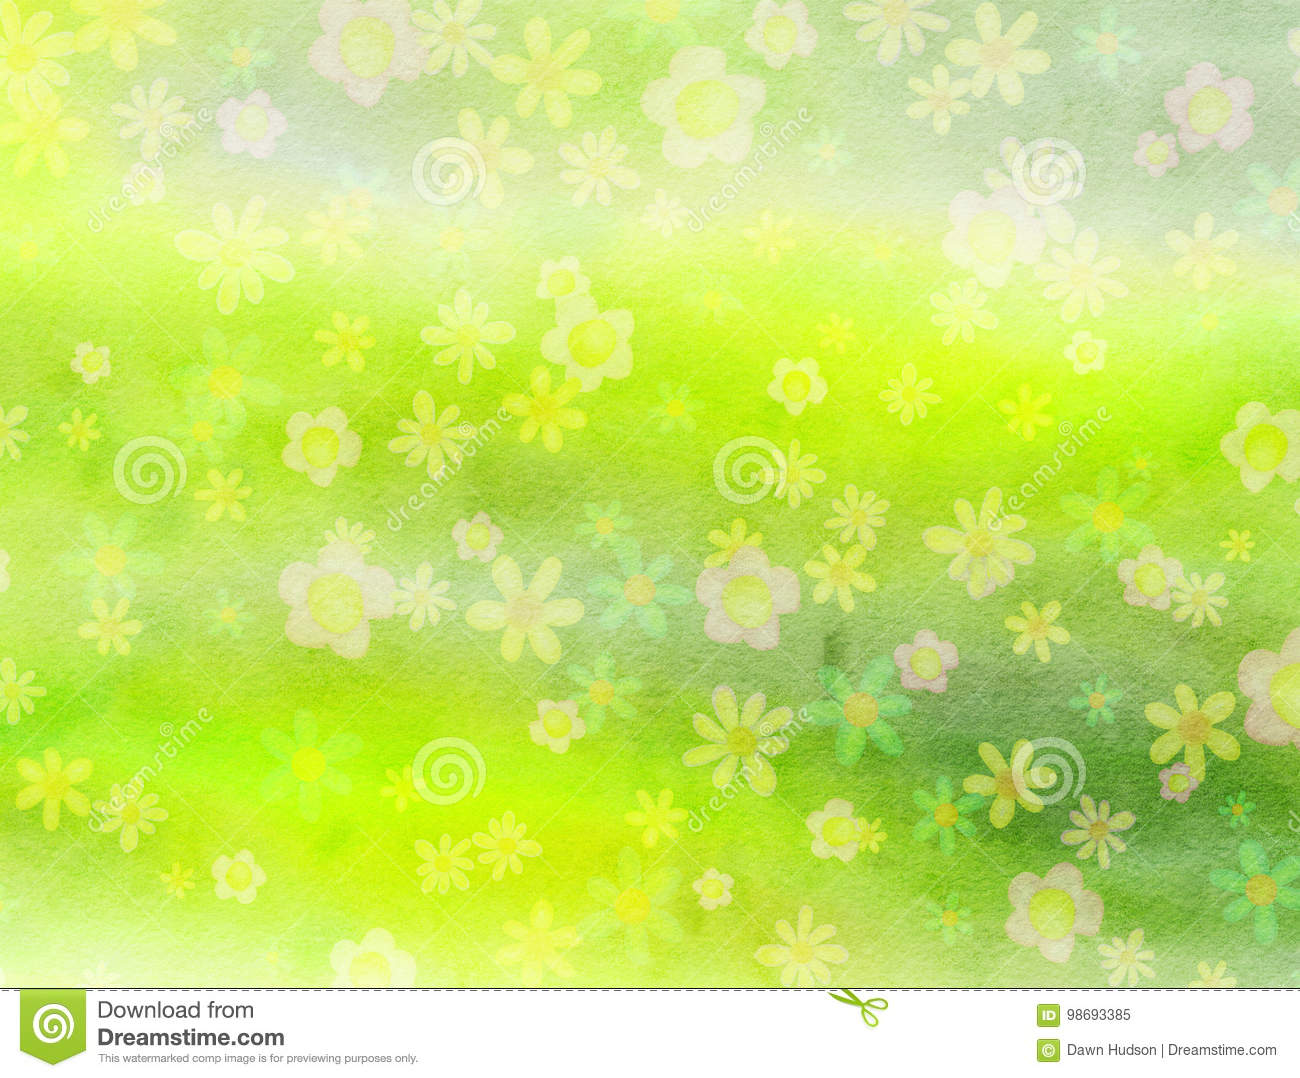 Watercolour Field of Flowers background Paper